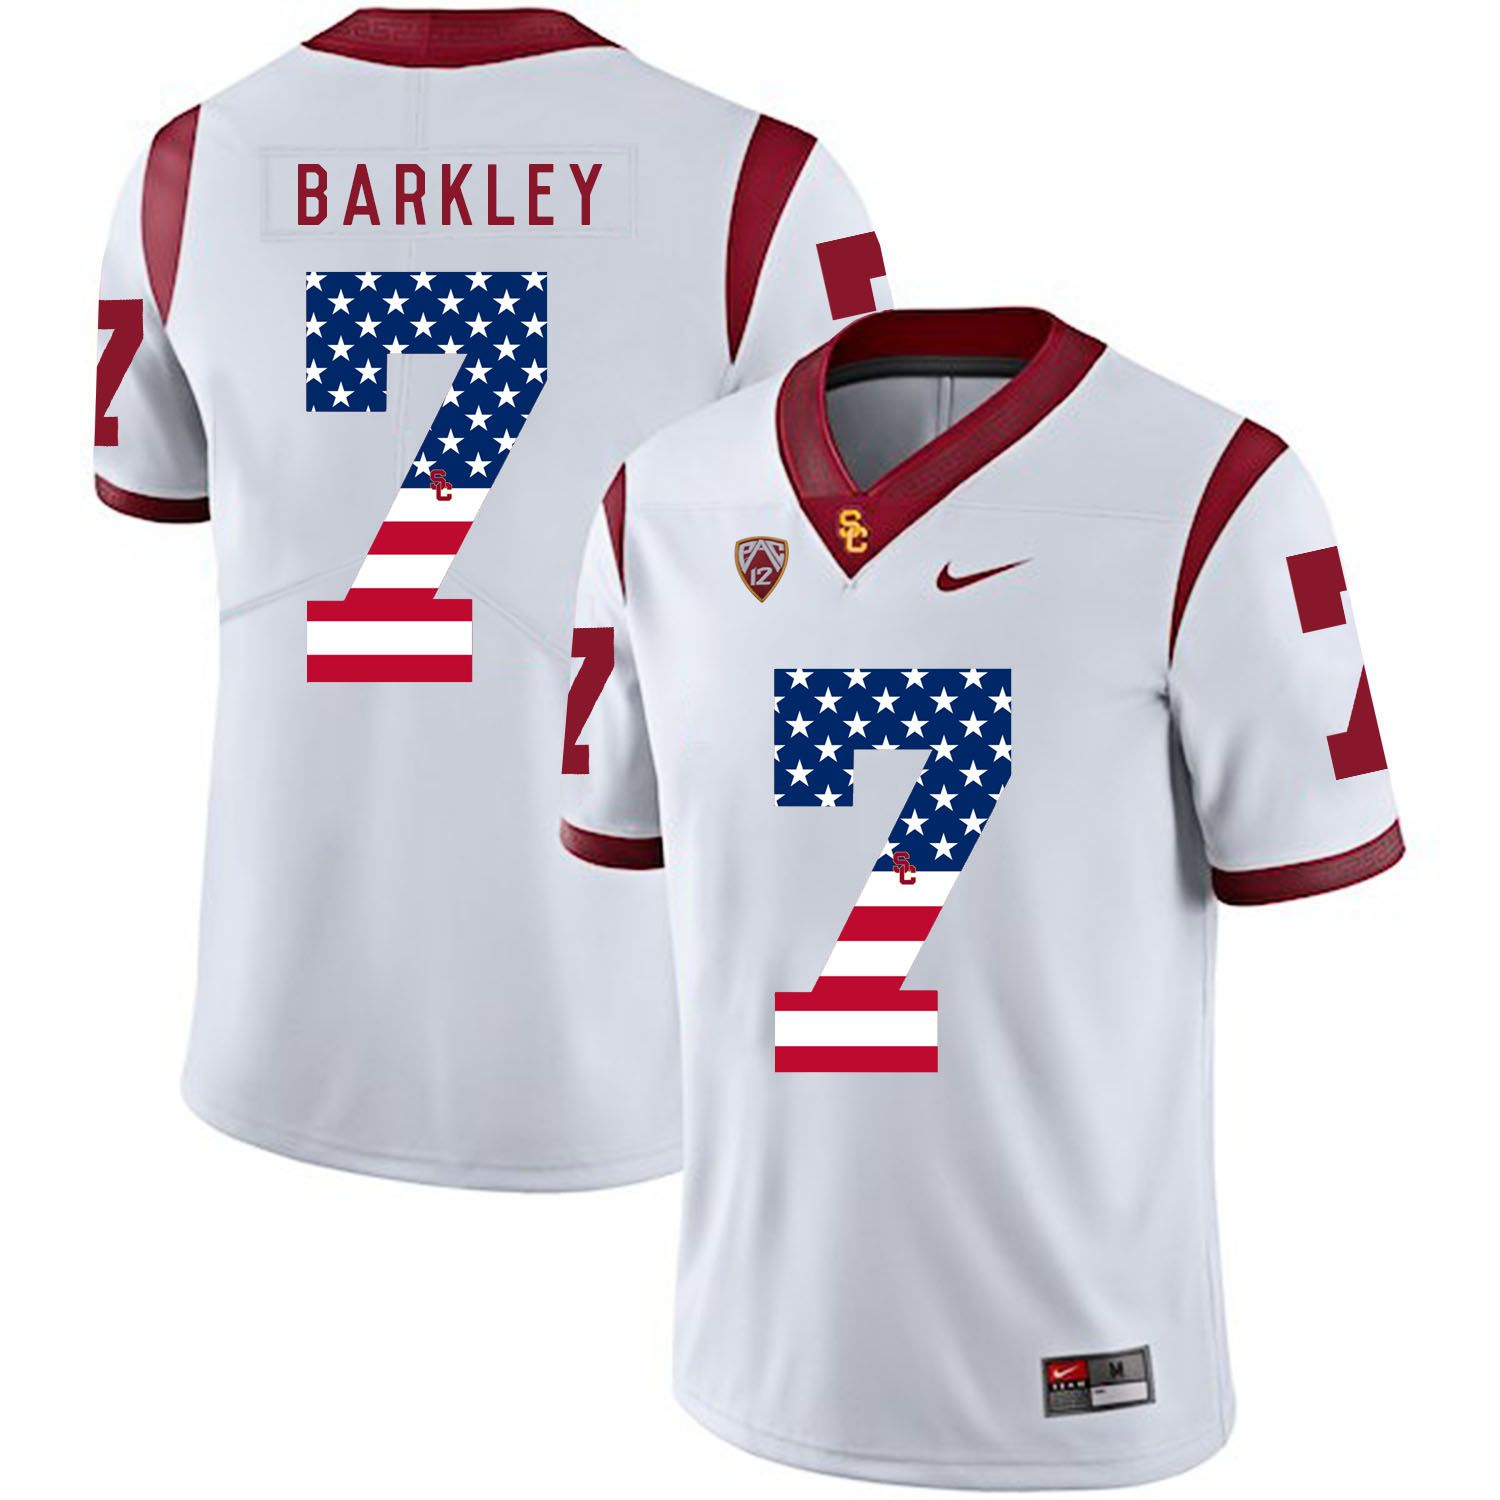 Men USC Trojans 7 Barkley White Flag Customized NCAA Jerseys